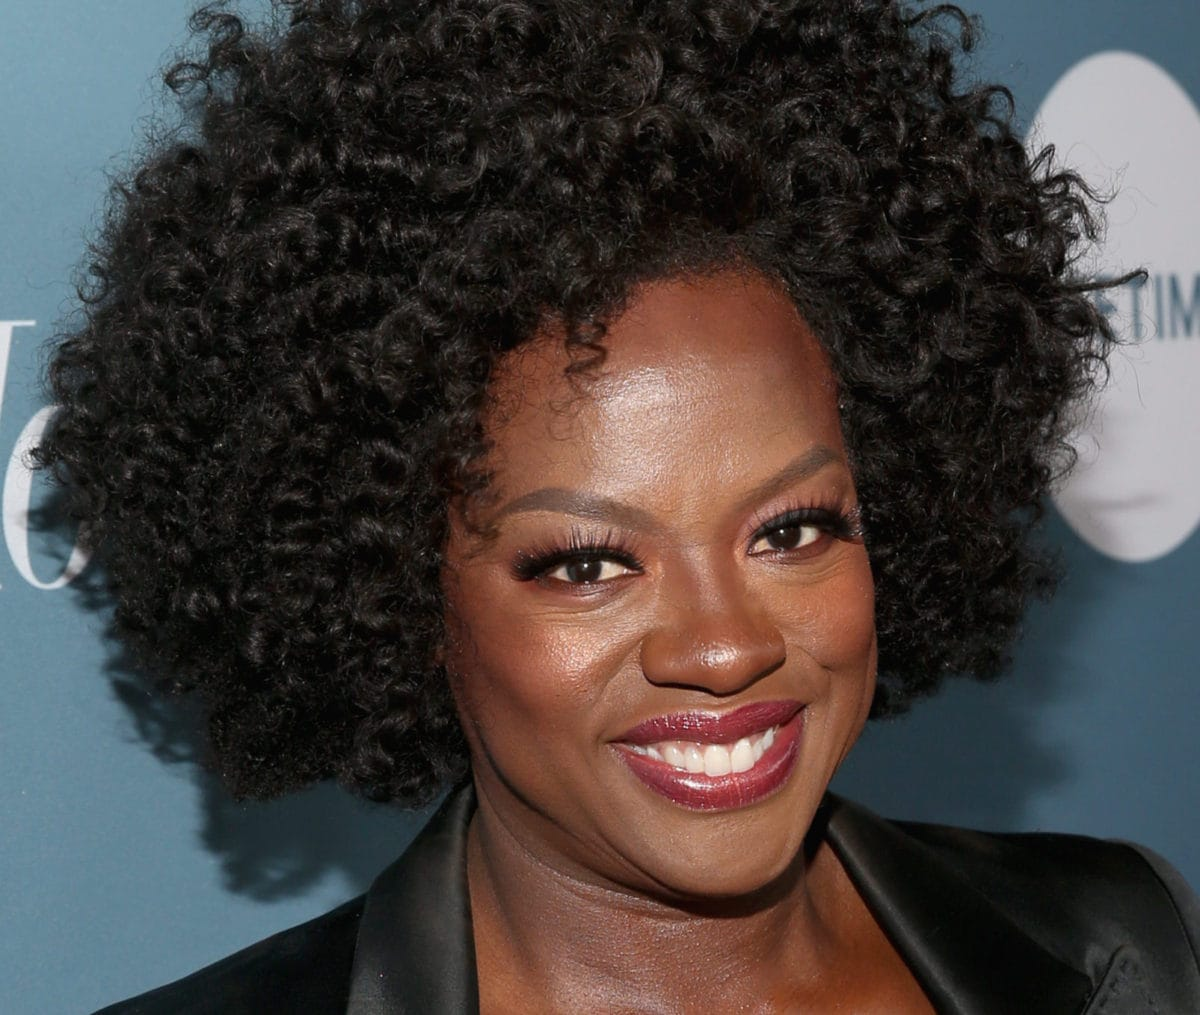 Viola Davis says she will only work with hairstylists who are familiar with Black hair